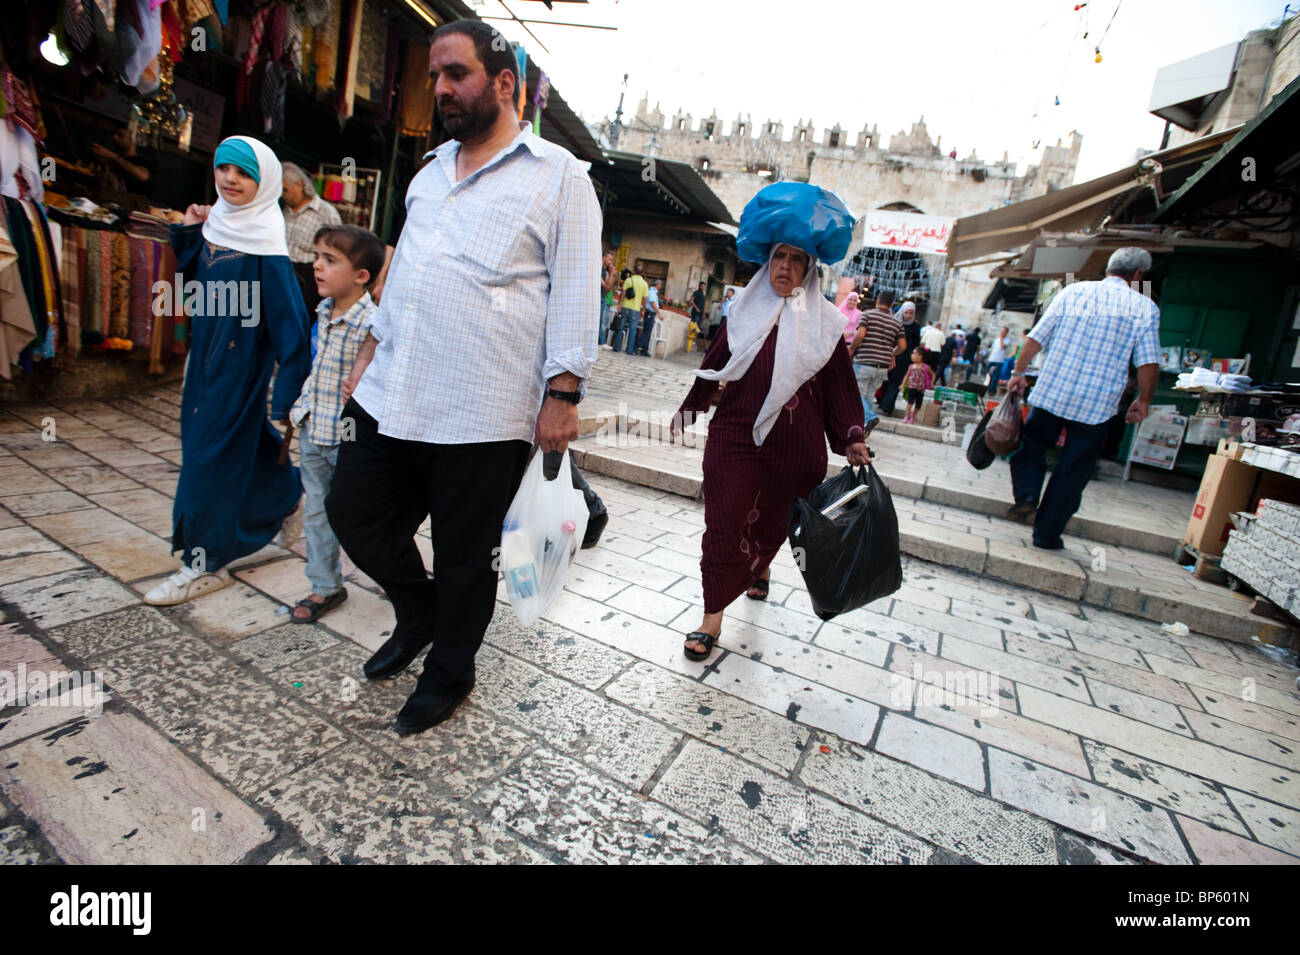 Palestinian families, including a woman balancing a bag on her head, walk among the shops of Jerusalem's Old City. Stock Photo